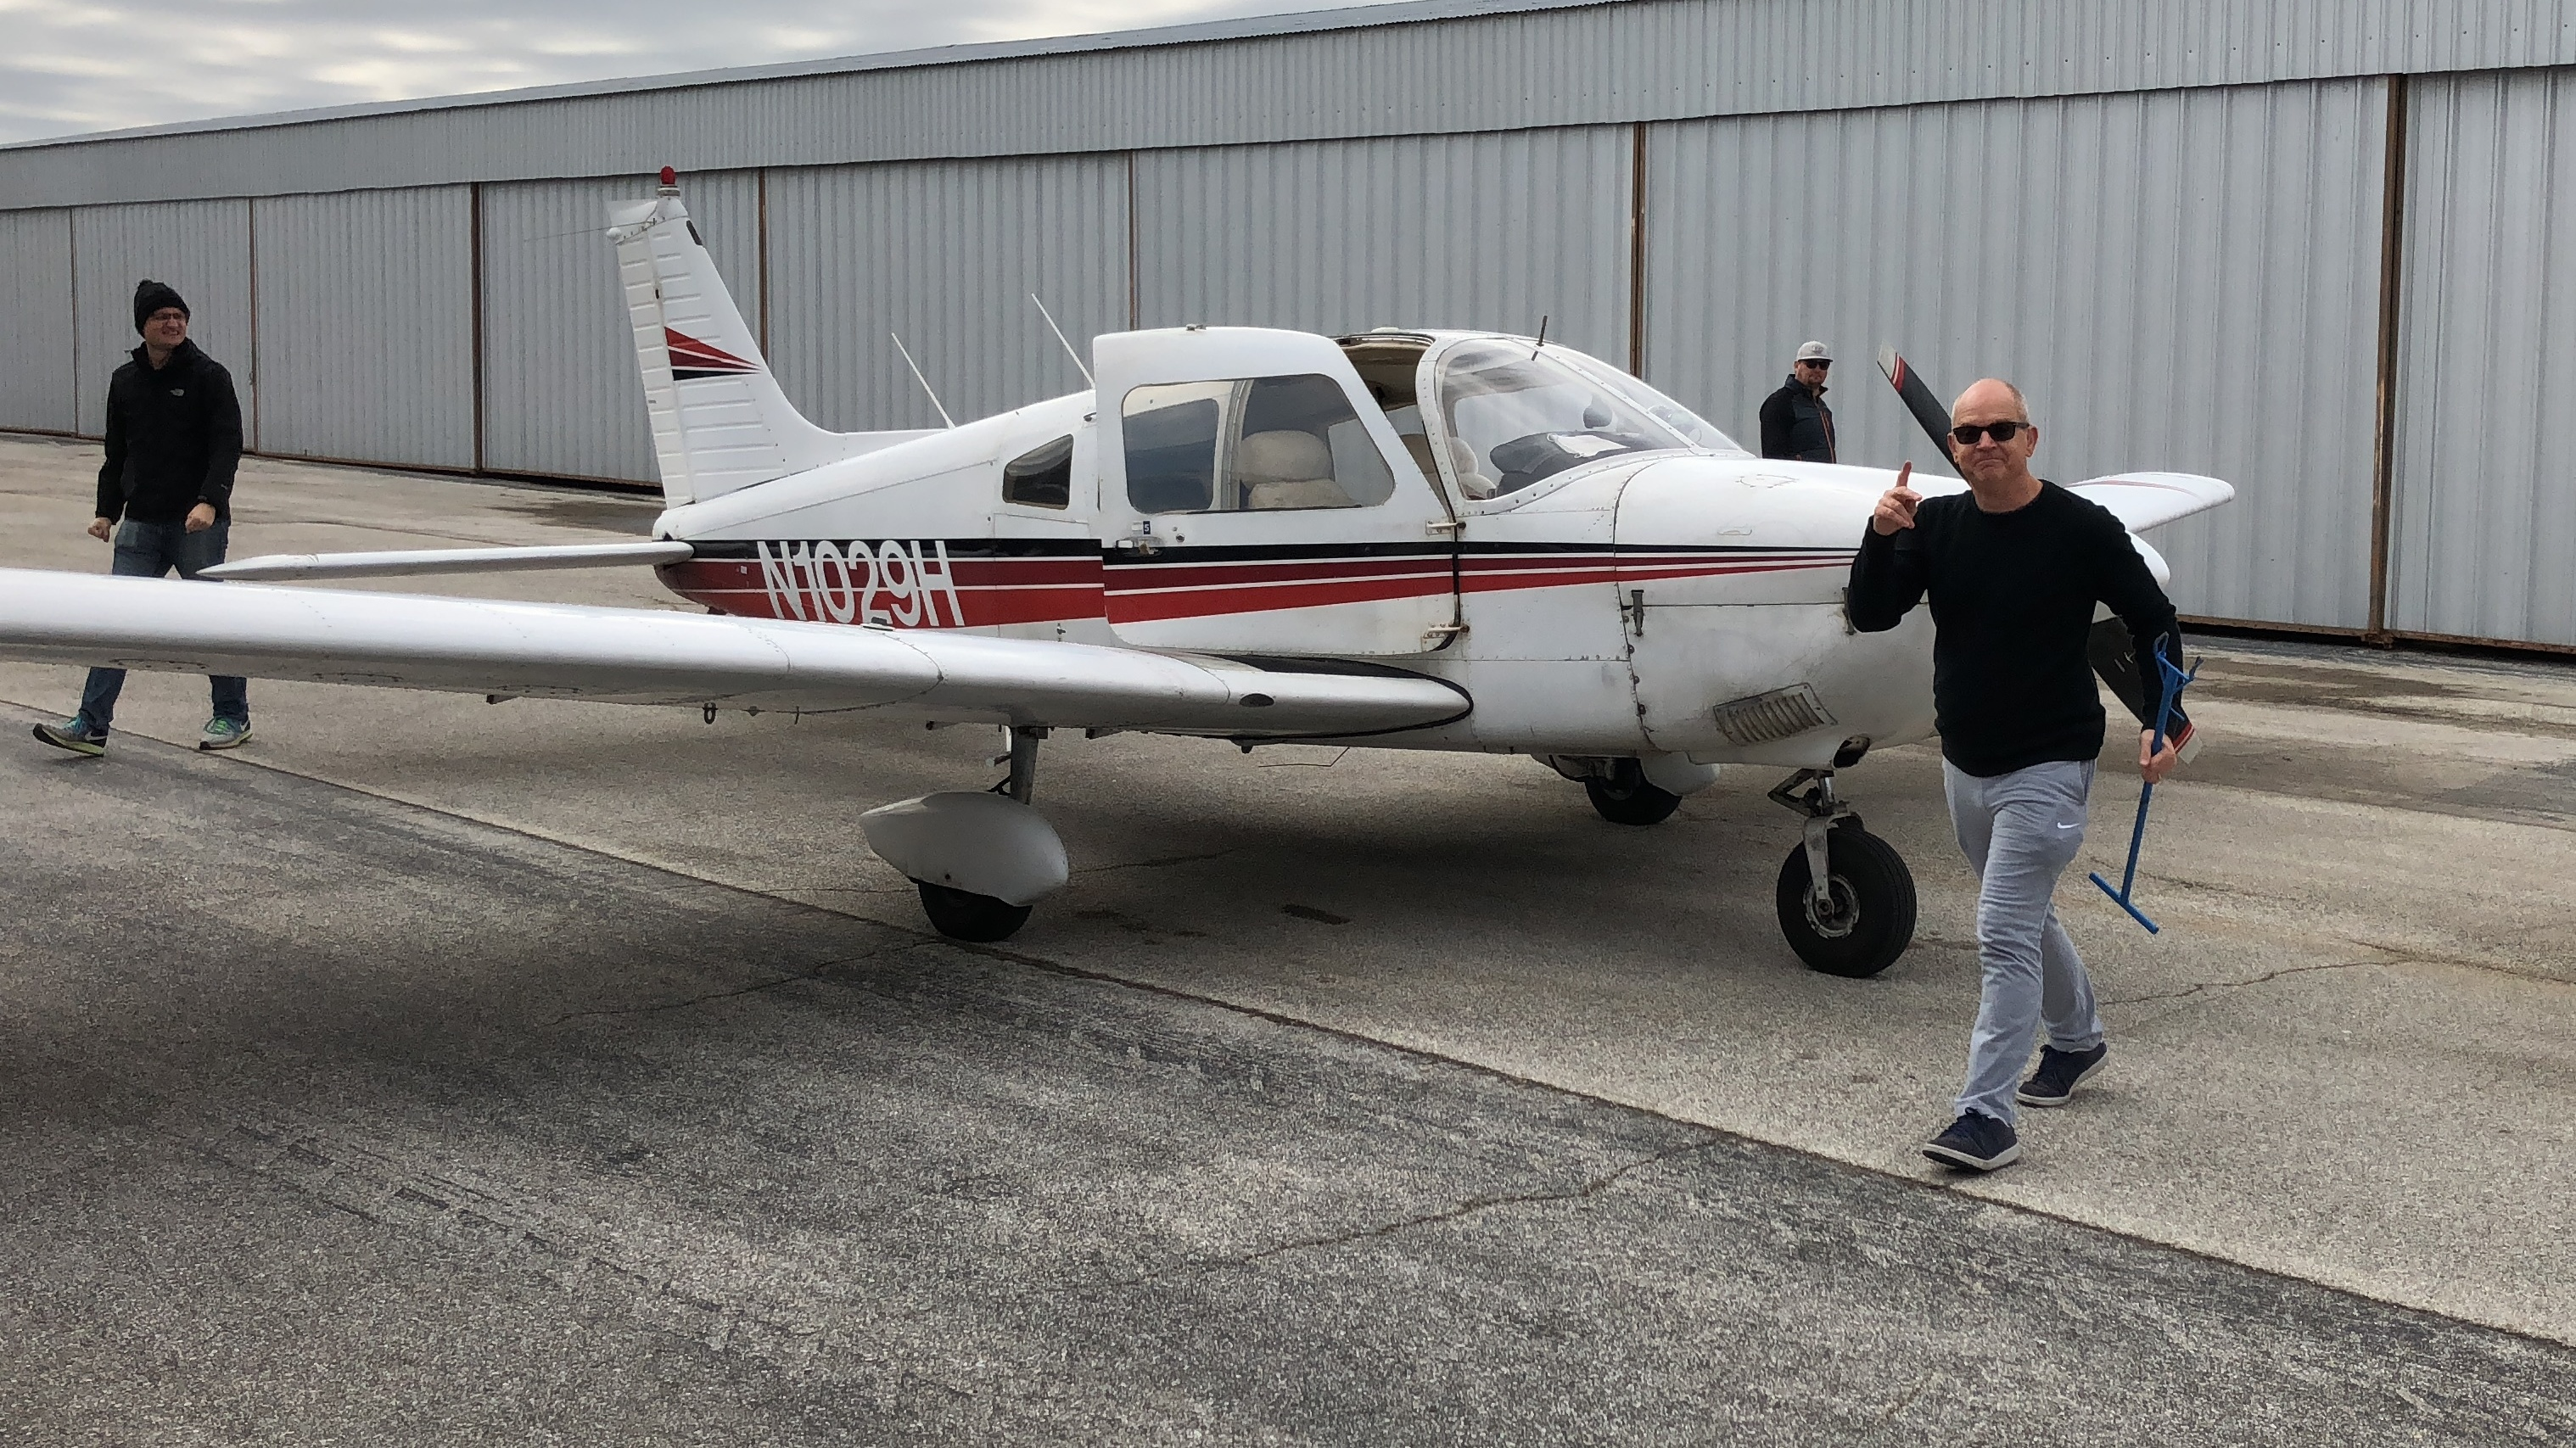 Jackson Busenbark carries a tow bar after towing his plane out of the aircraft hangar in preparation for a flight.